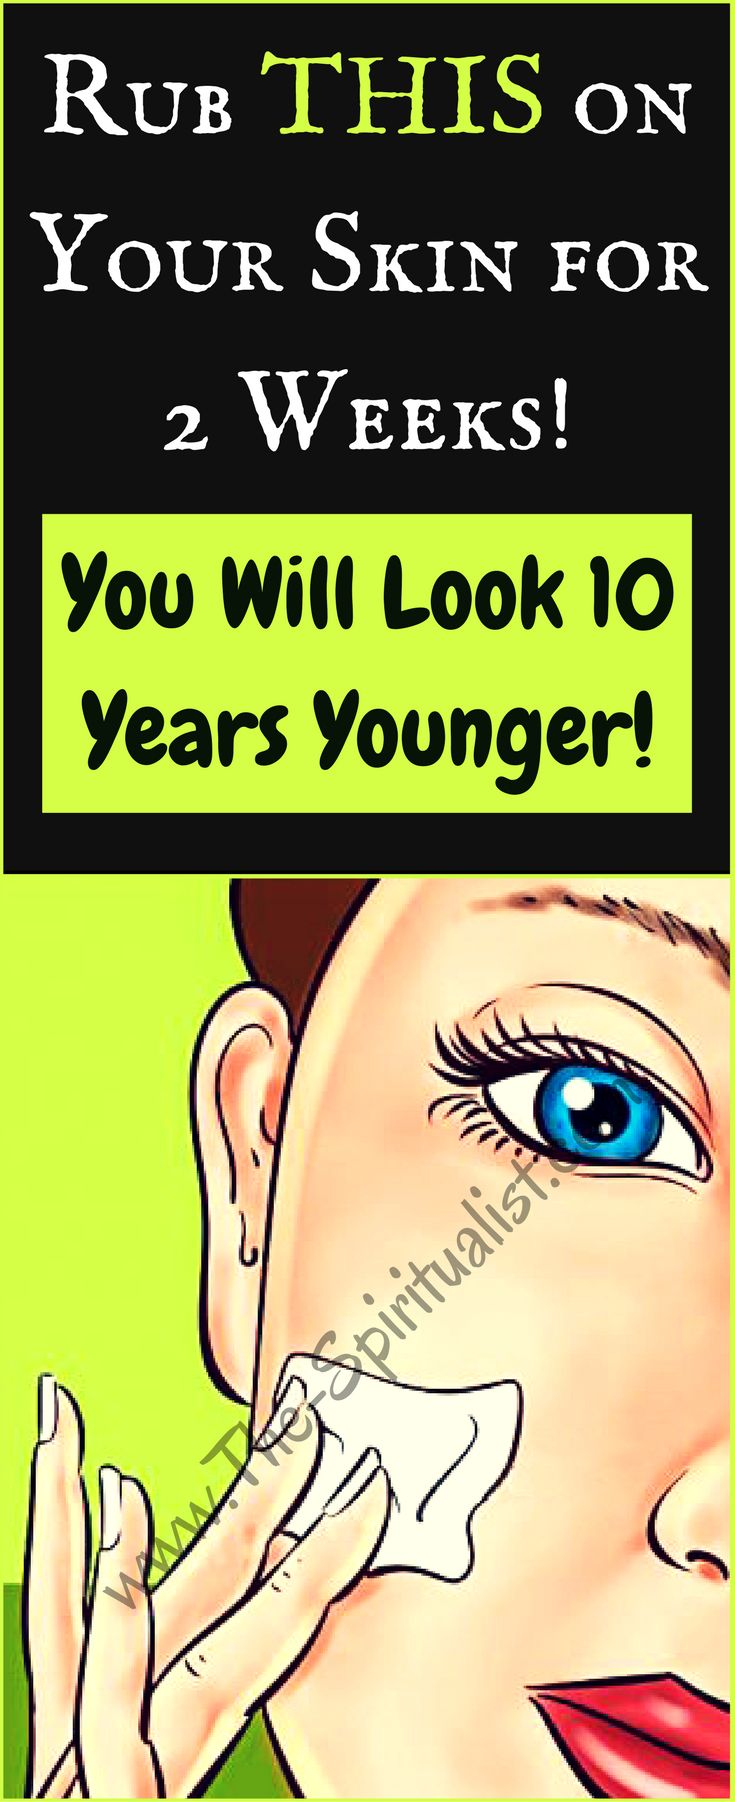 Rub THIS on Your Skin for 2 Weeks and See Amazing Results (You'll Look 10 Years Younger!)